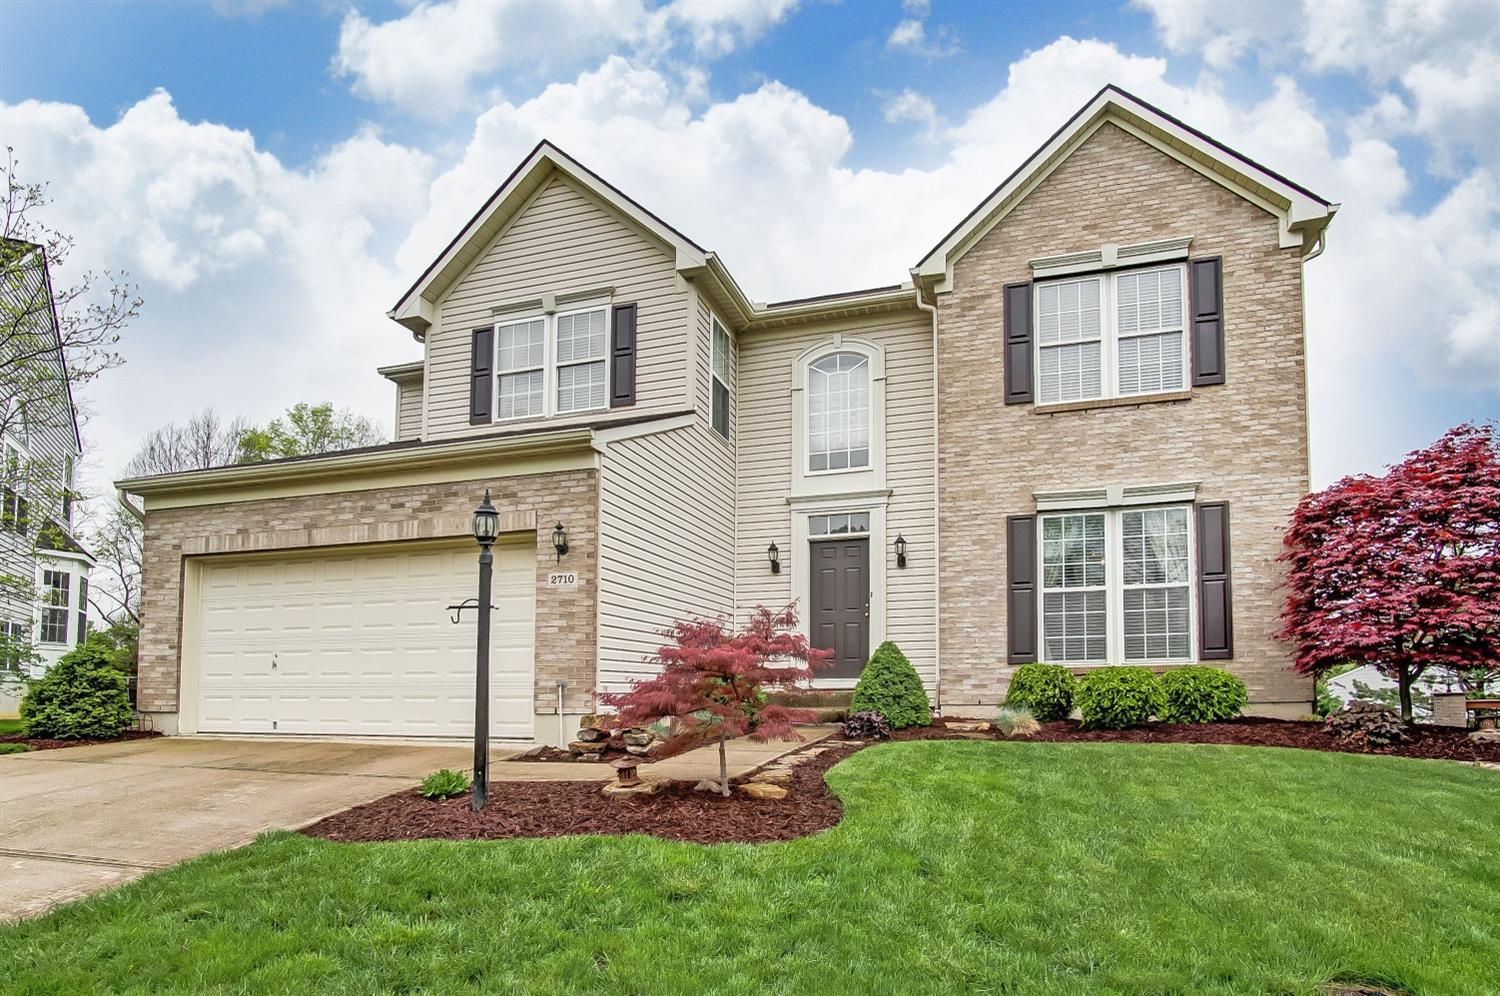 Property for sale at 2710 Stone Mill Way, Fairfield Twp,  Ohio 45011